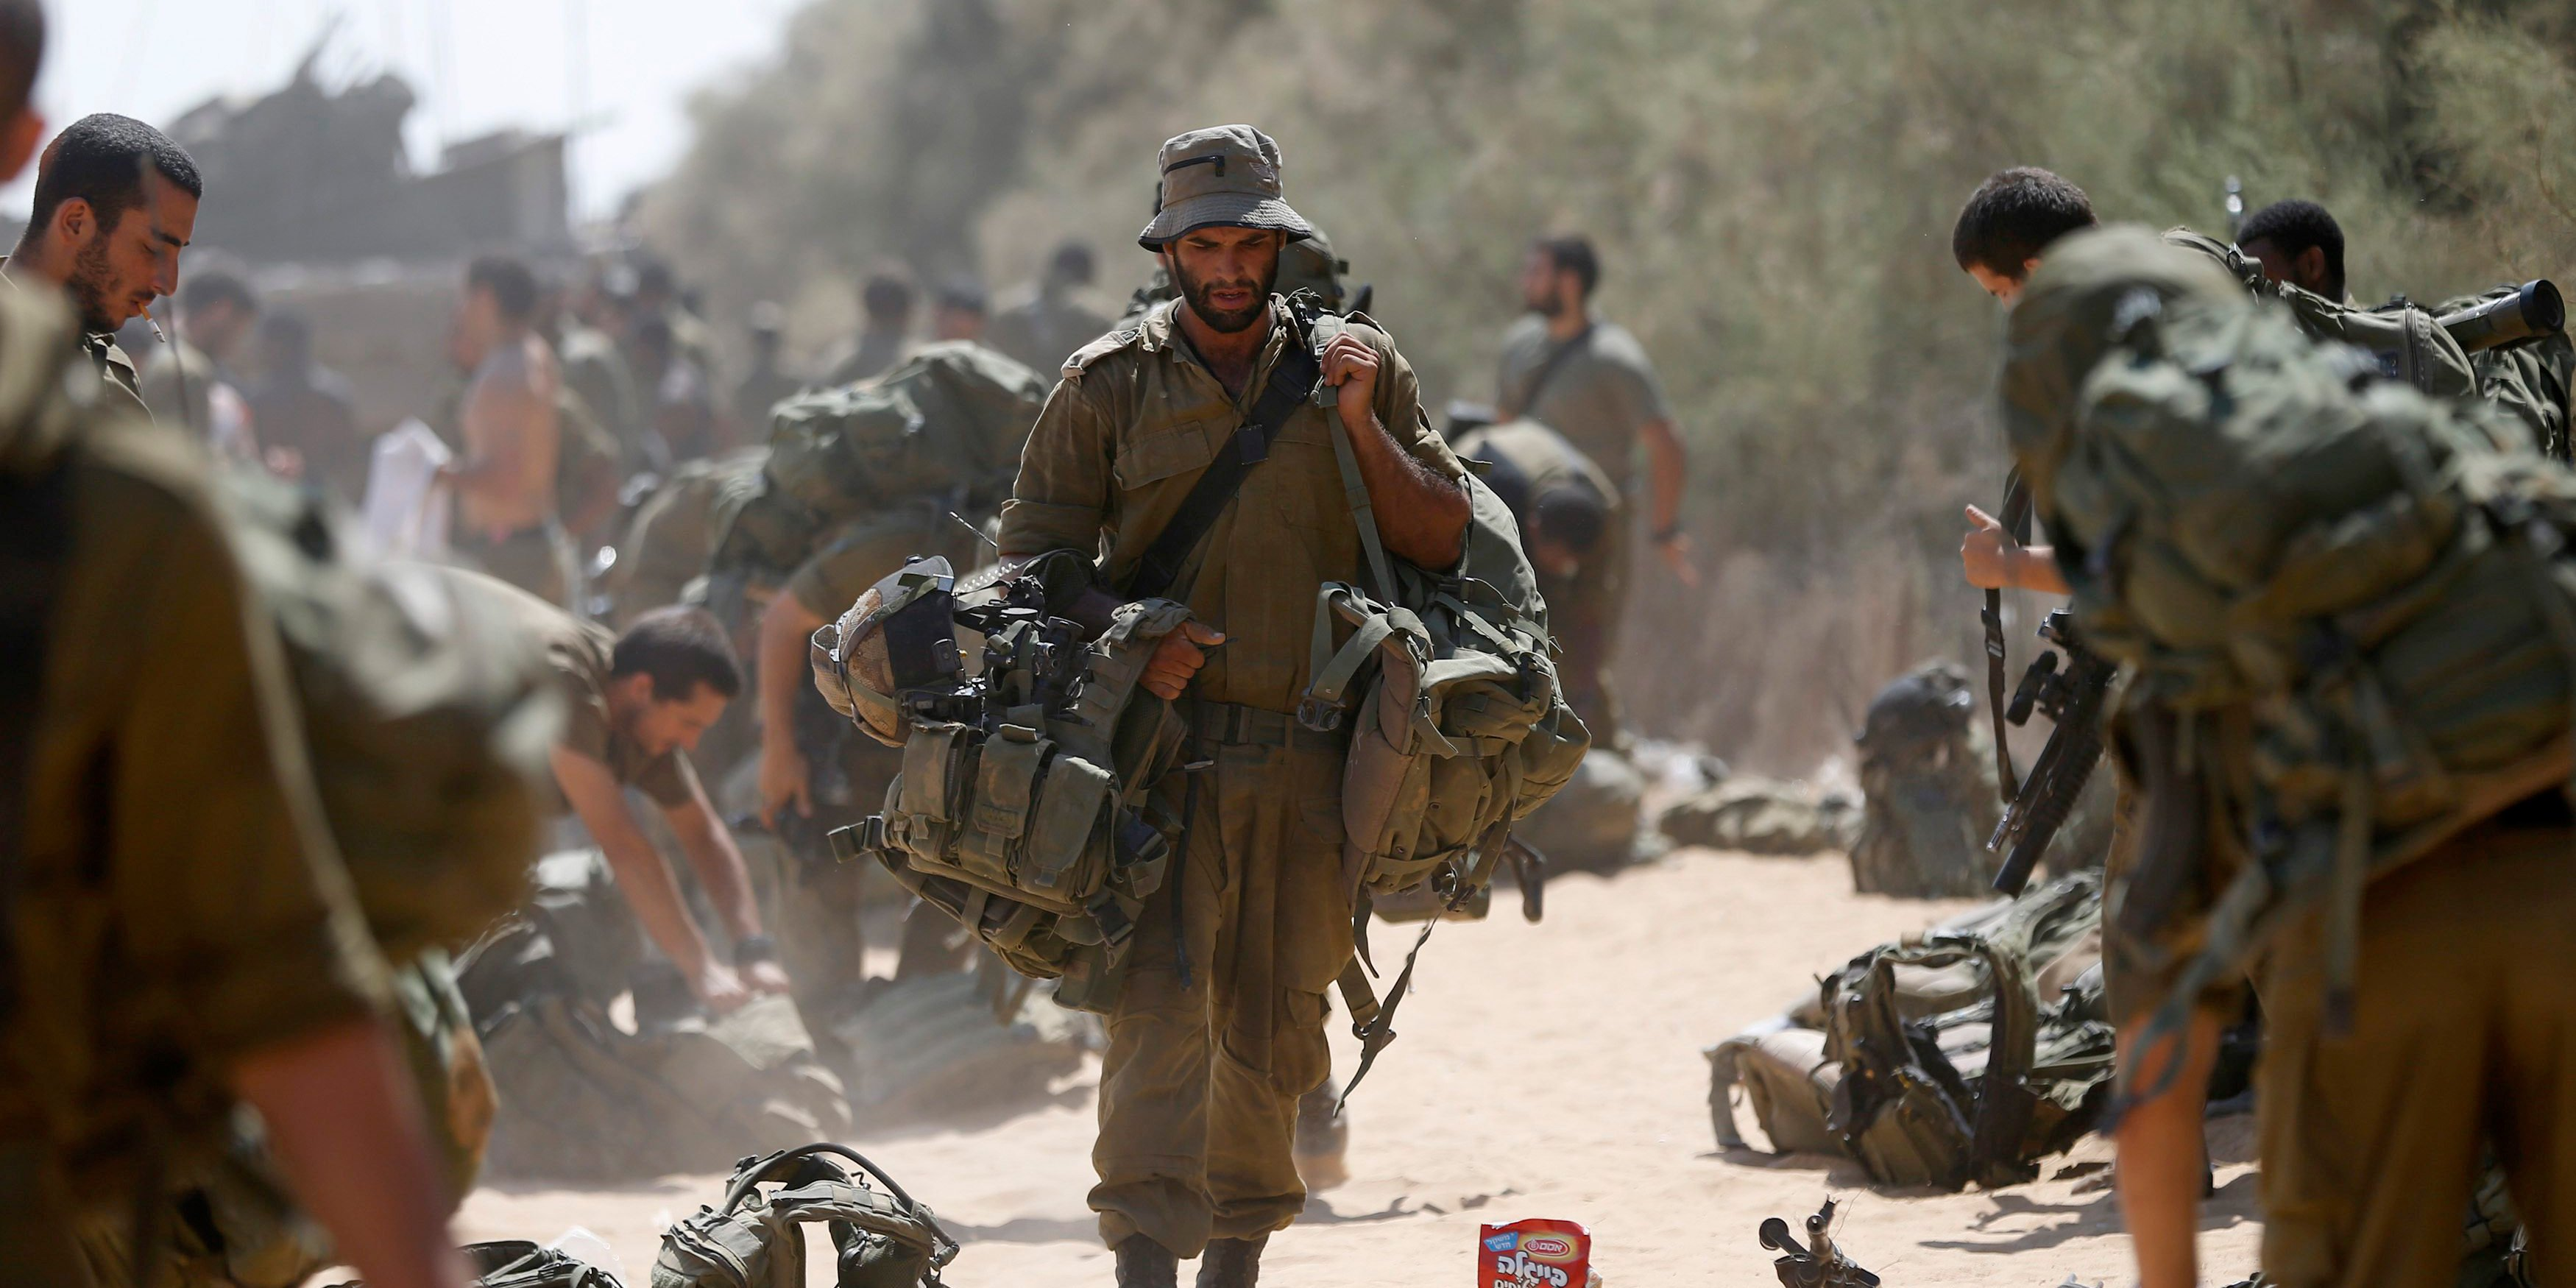 An Israeli soldier from the Givati brigade carries his gear after returning to Israel from Gaza August 4, 2014. Photo: Reuters